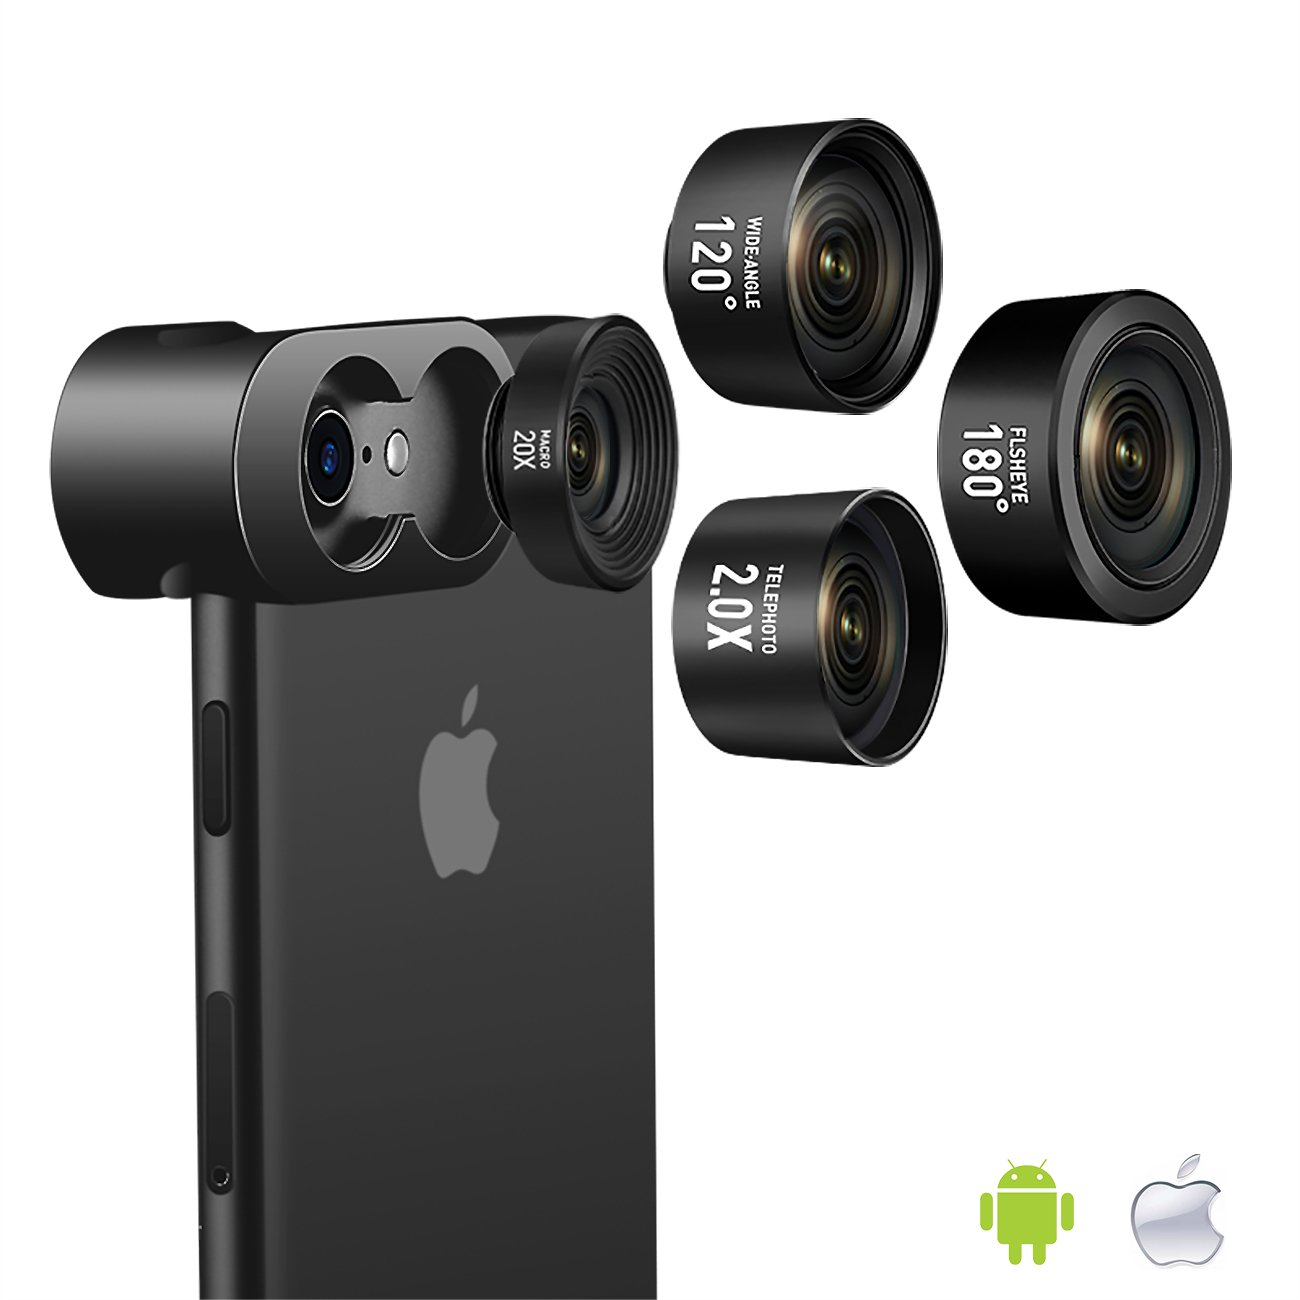 Cell Phone Camera Lens, Jopree 4 in 1 Camera Lens Kit, 20X Macro Lens, 2.0X Zoom Telephoto Lens, 120°Wide Angle Lens, 180°Fisheye Lens for iPhone X/8/7/7 Plus/6s/6s Plus/6/5 & Samsung & Smartphones